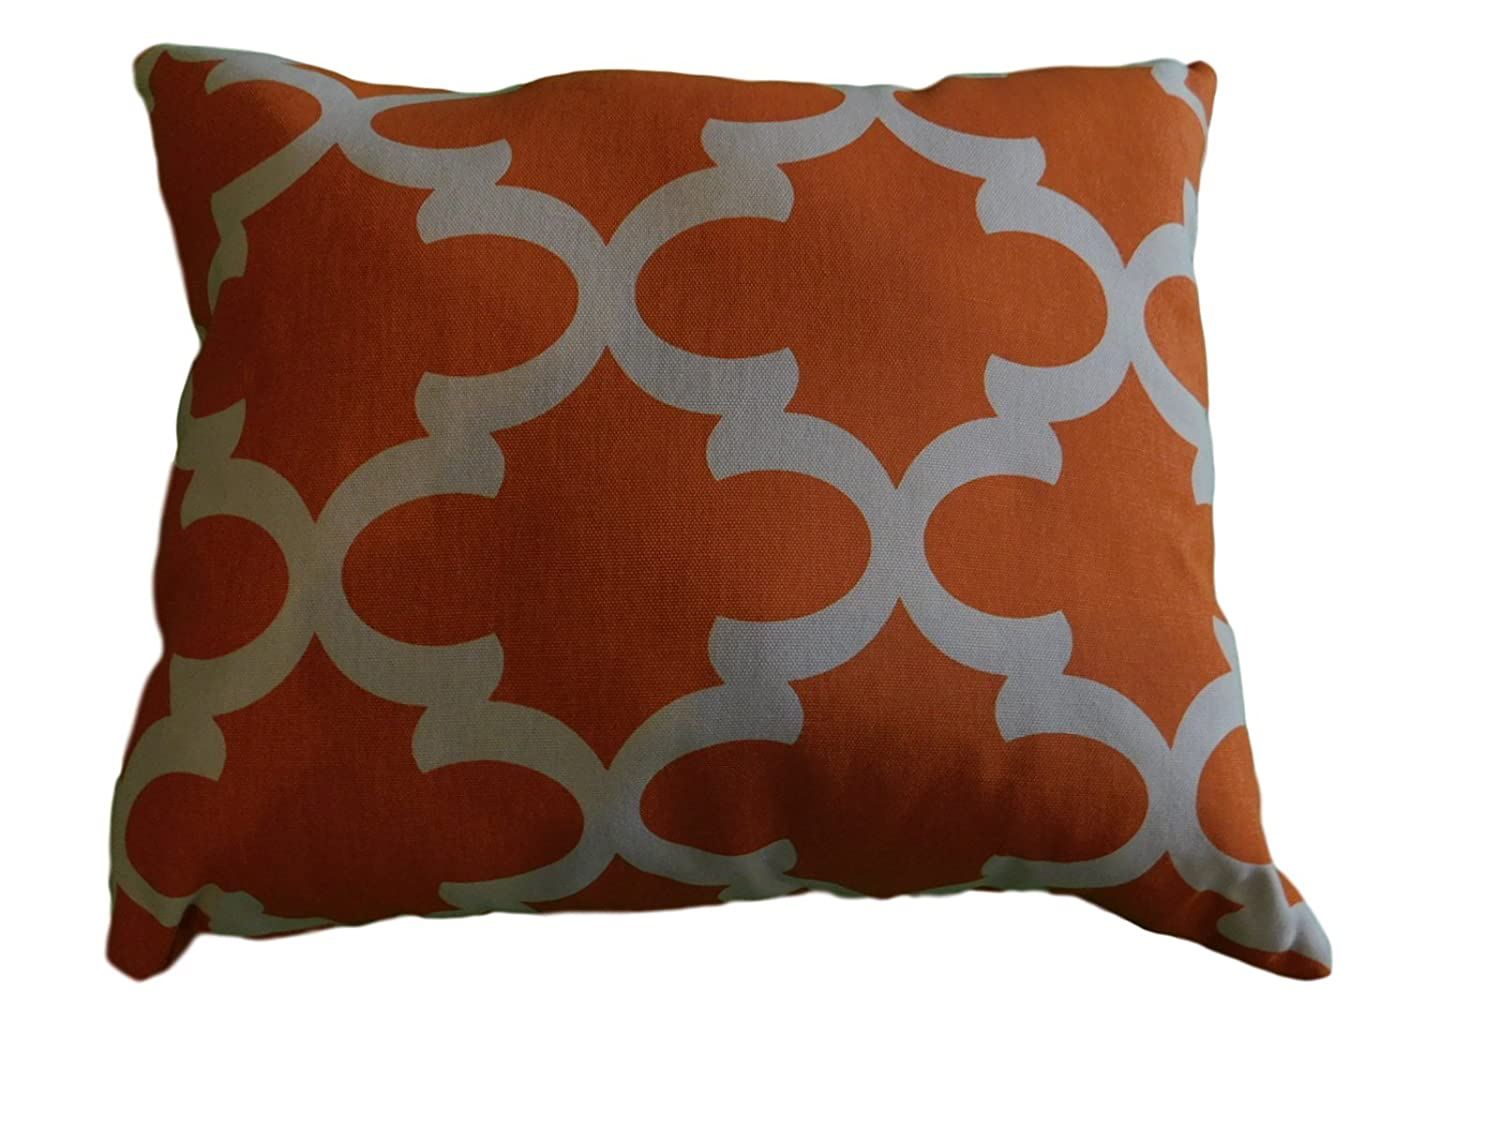 Apache orange fynn PILLOW Size 14